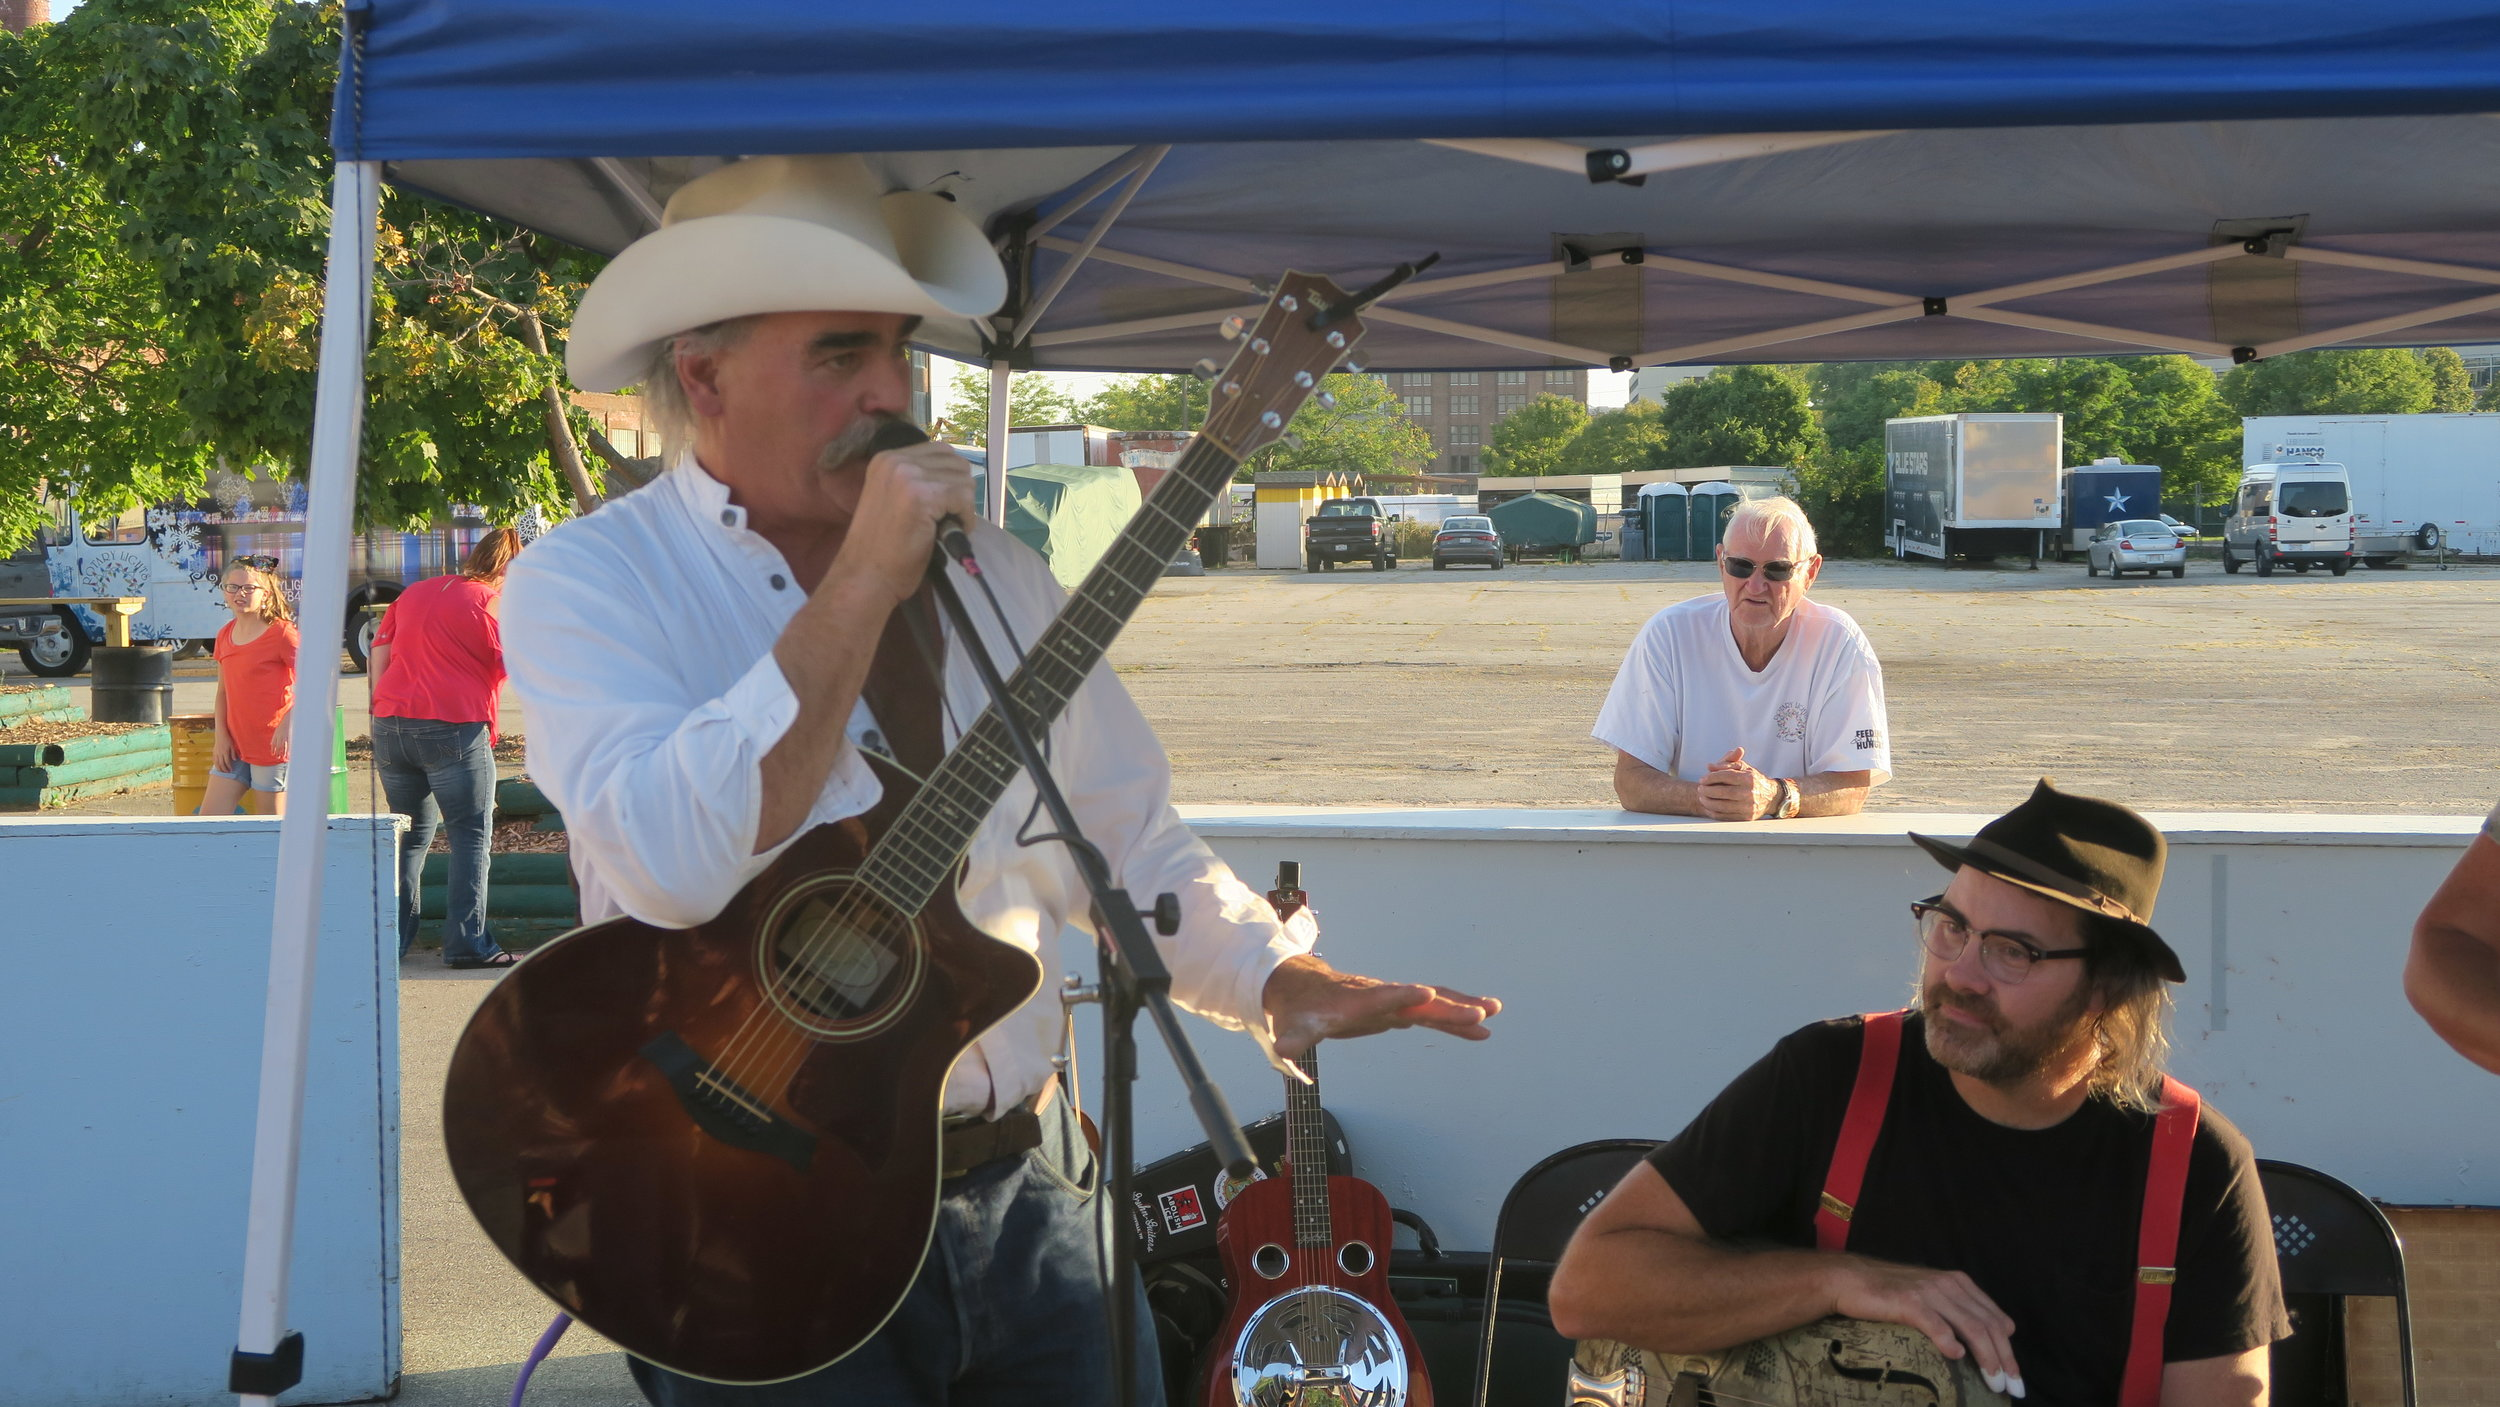 Marty Raney left and Lou Shields take time for a jam session. Photo by Natalie Munio